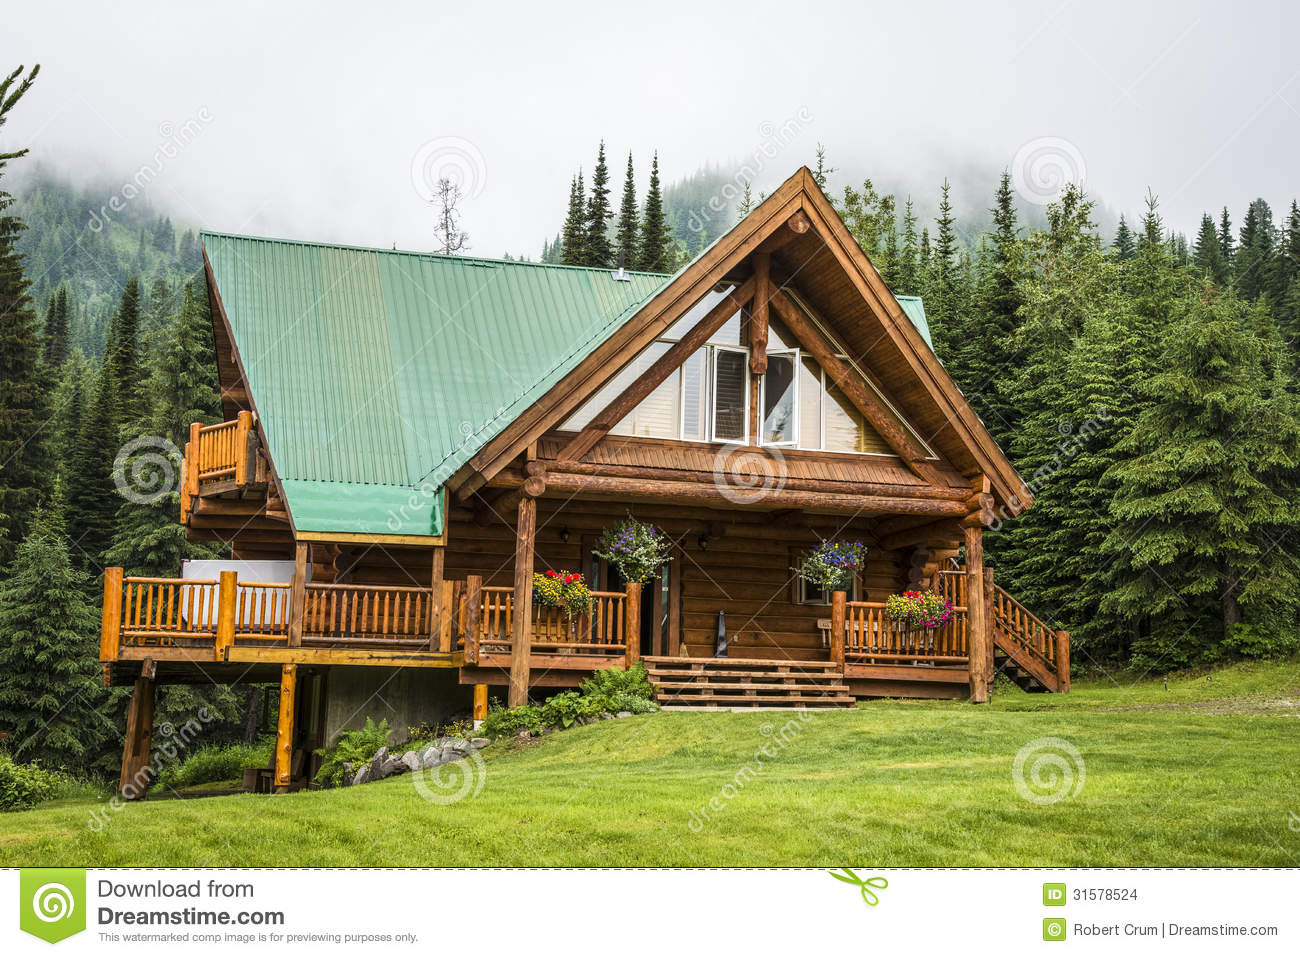 Wonderful image of Contemporary Log Cabin Lodge Stock Images Image: 31578524 with #9E682D color and 1300x957 pixels